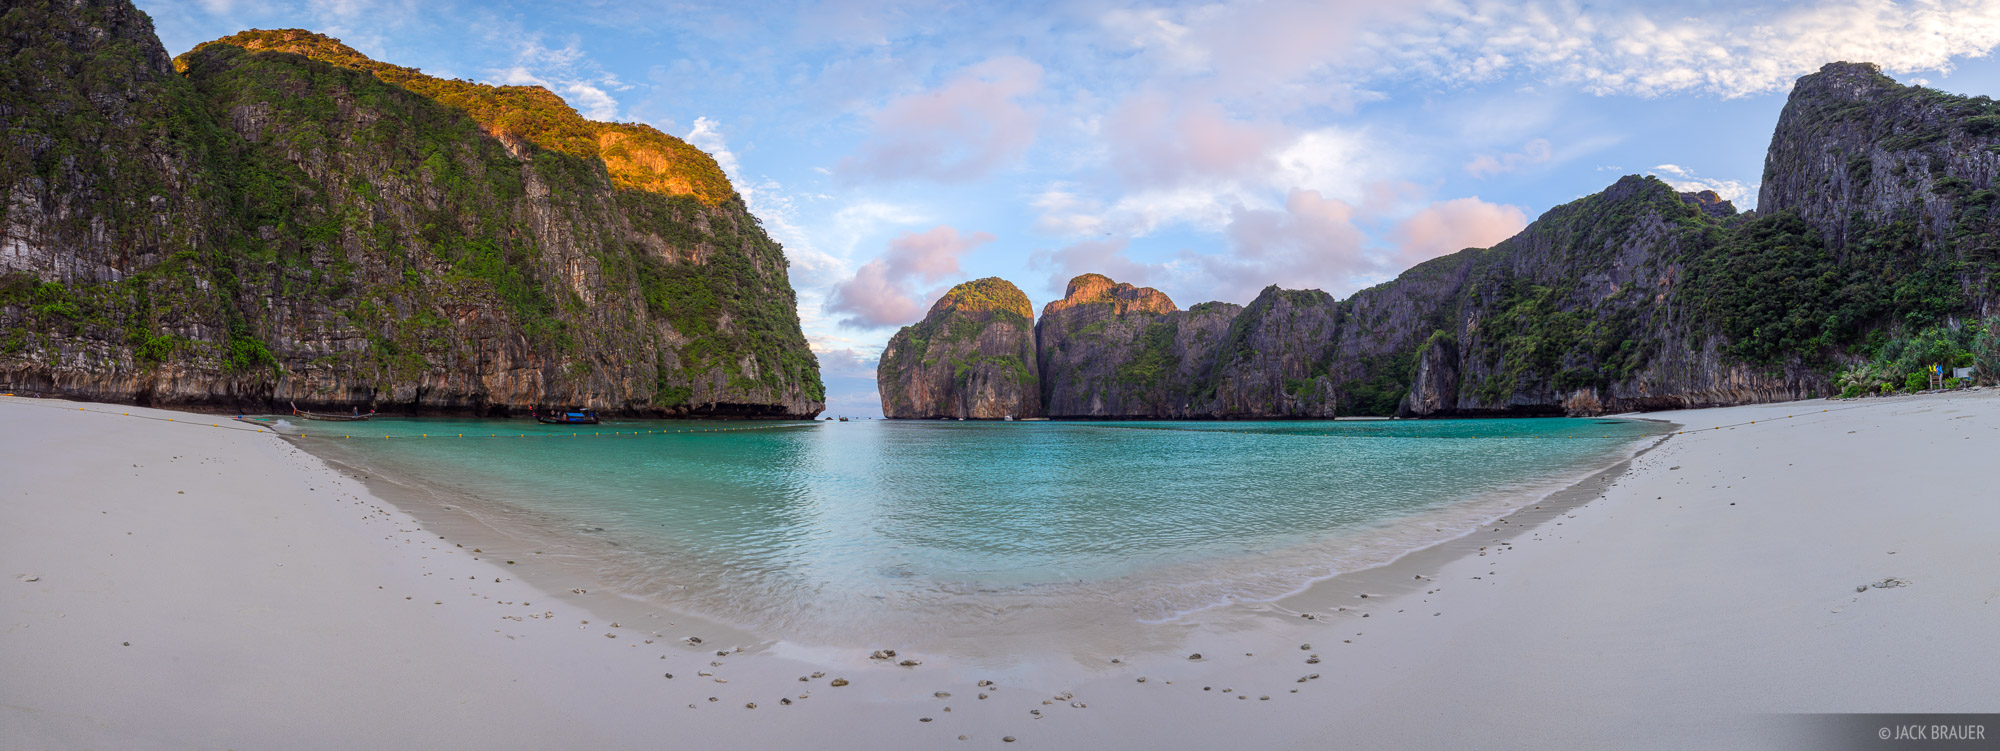 A panorama of the incredible cove of Maya Bay, where, incidentally, The Beach movie starring Leonardo DiCaprio was filmed.